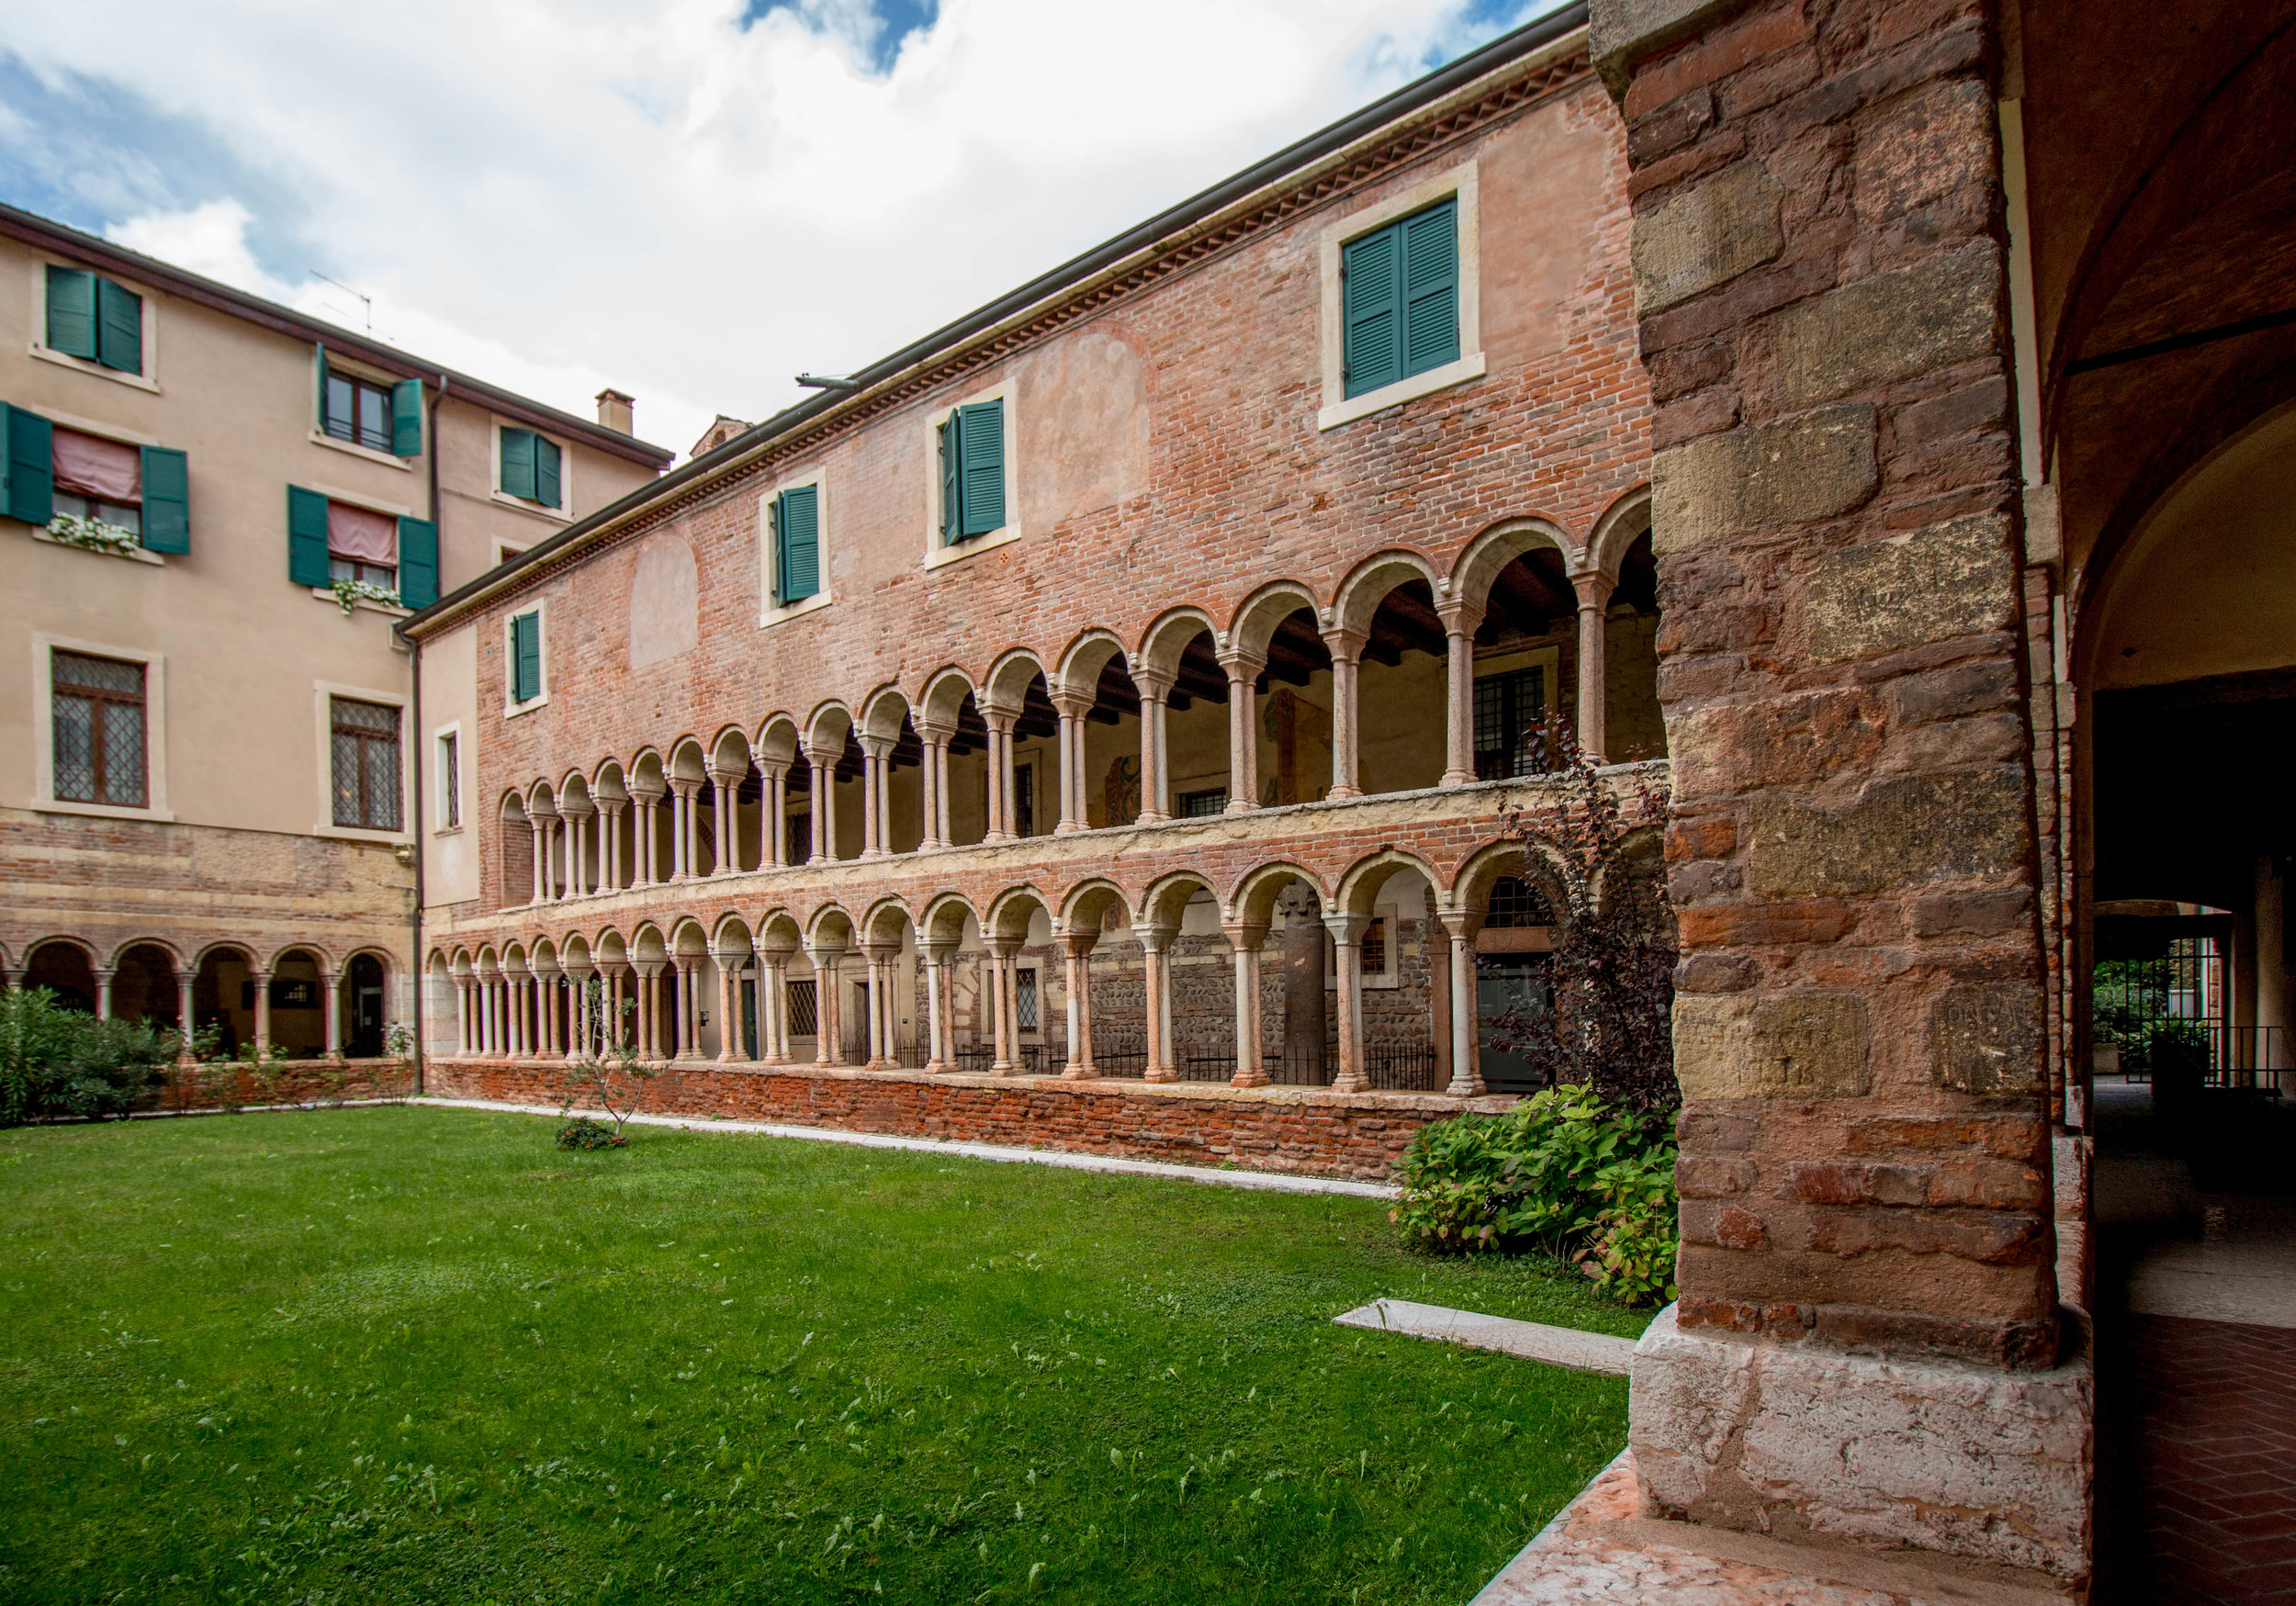 Cloister at the cathedral